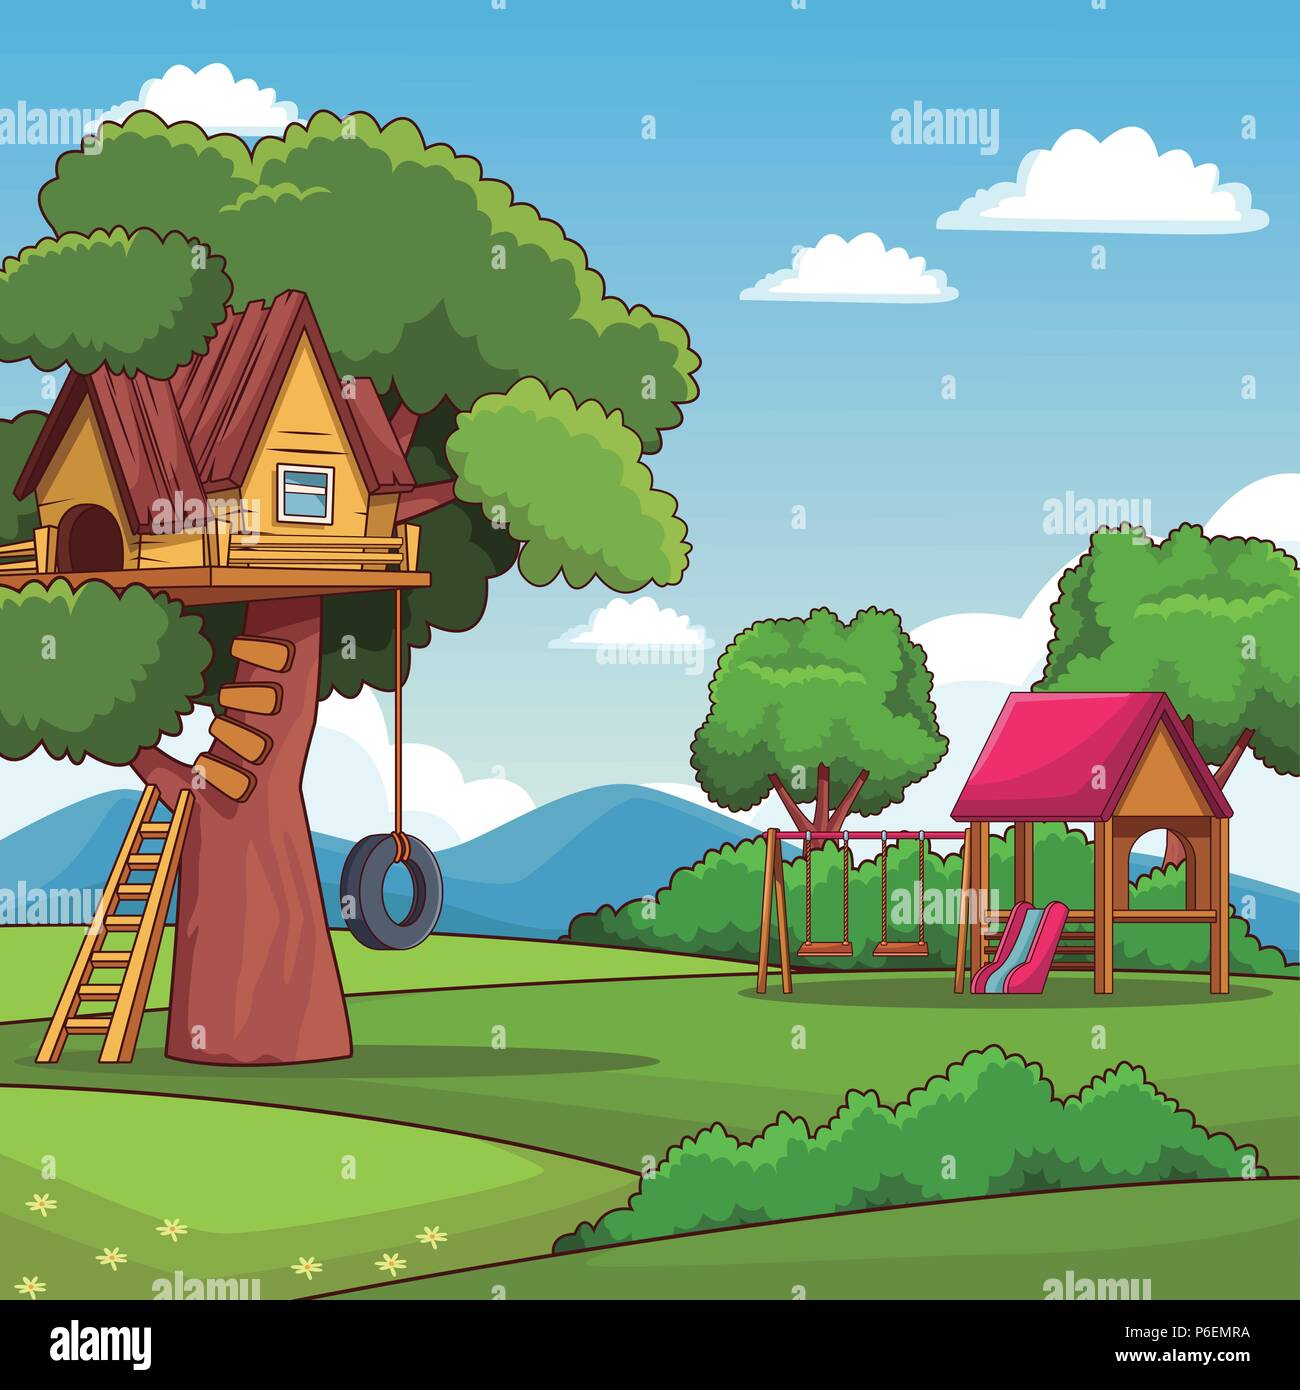 Park With Tree House And Playhouse Scenery Cartoon Vector Illustration Graphic Design Stock Vector Image Art Alamy New users enjoy 60% off. https www alamy com park with tree house and playhouse scenery cartoon vector illustration graphic design image210536014 html